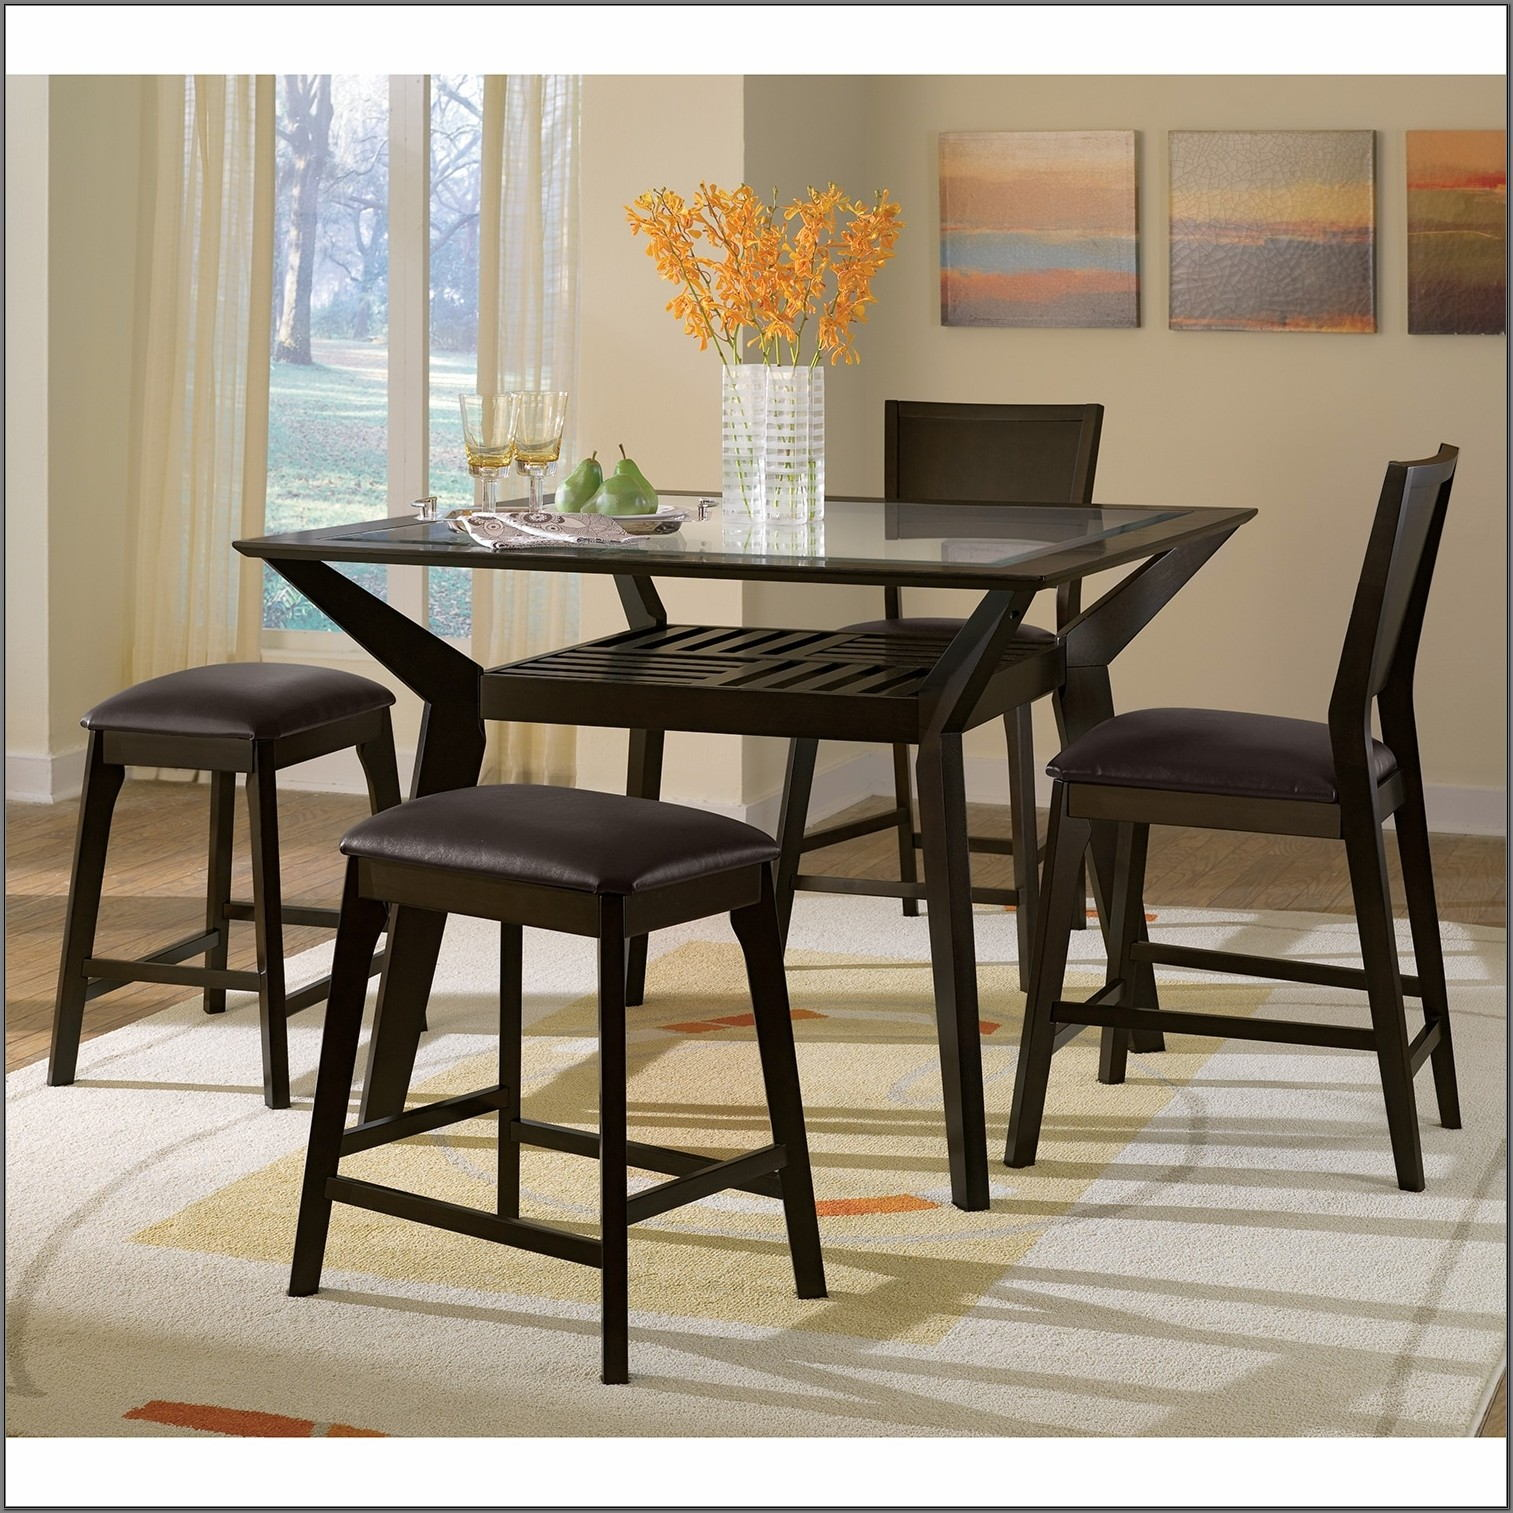 American Signature Furniture Dining Room Chairs